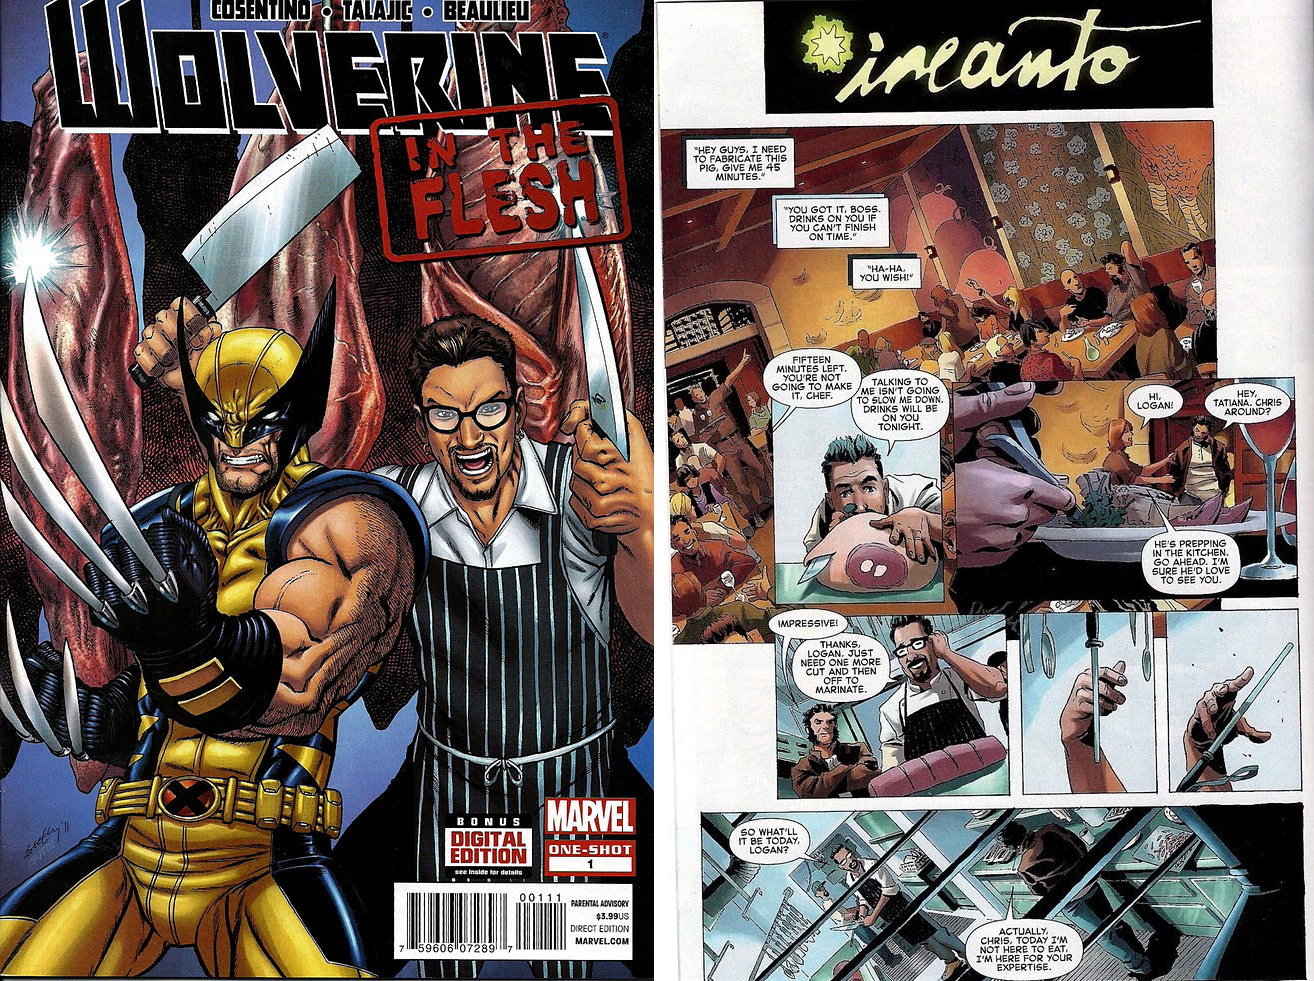 Here's a Look at Chris Cosentino's Wolverine Comic Book